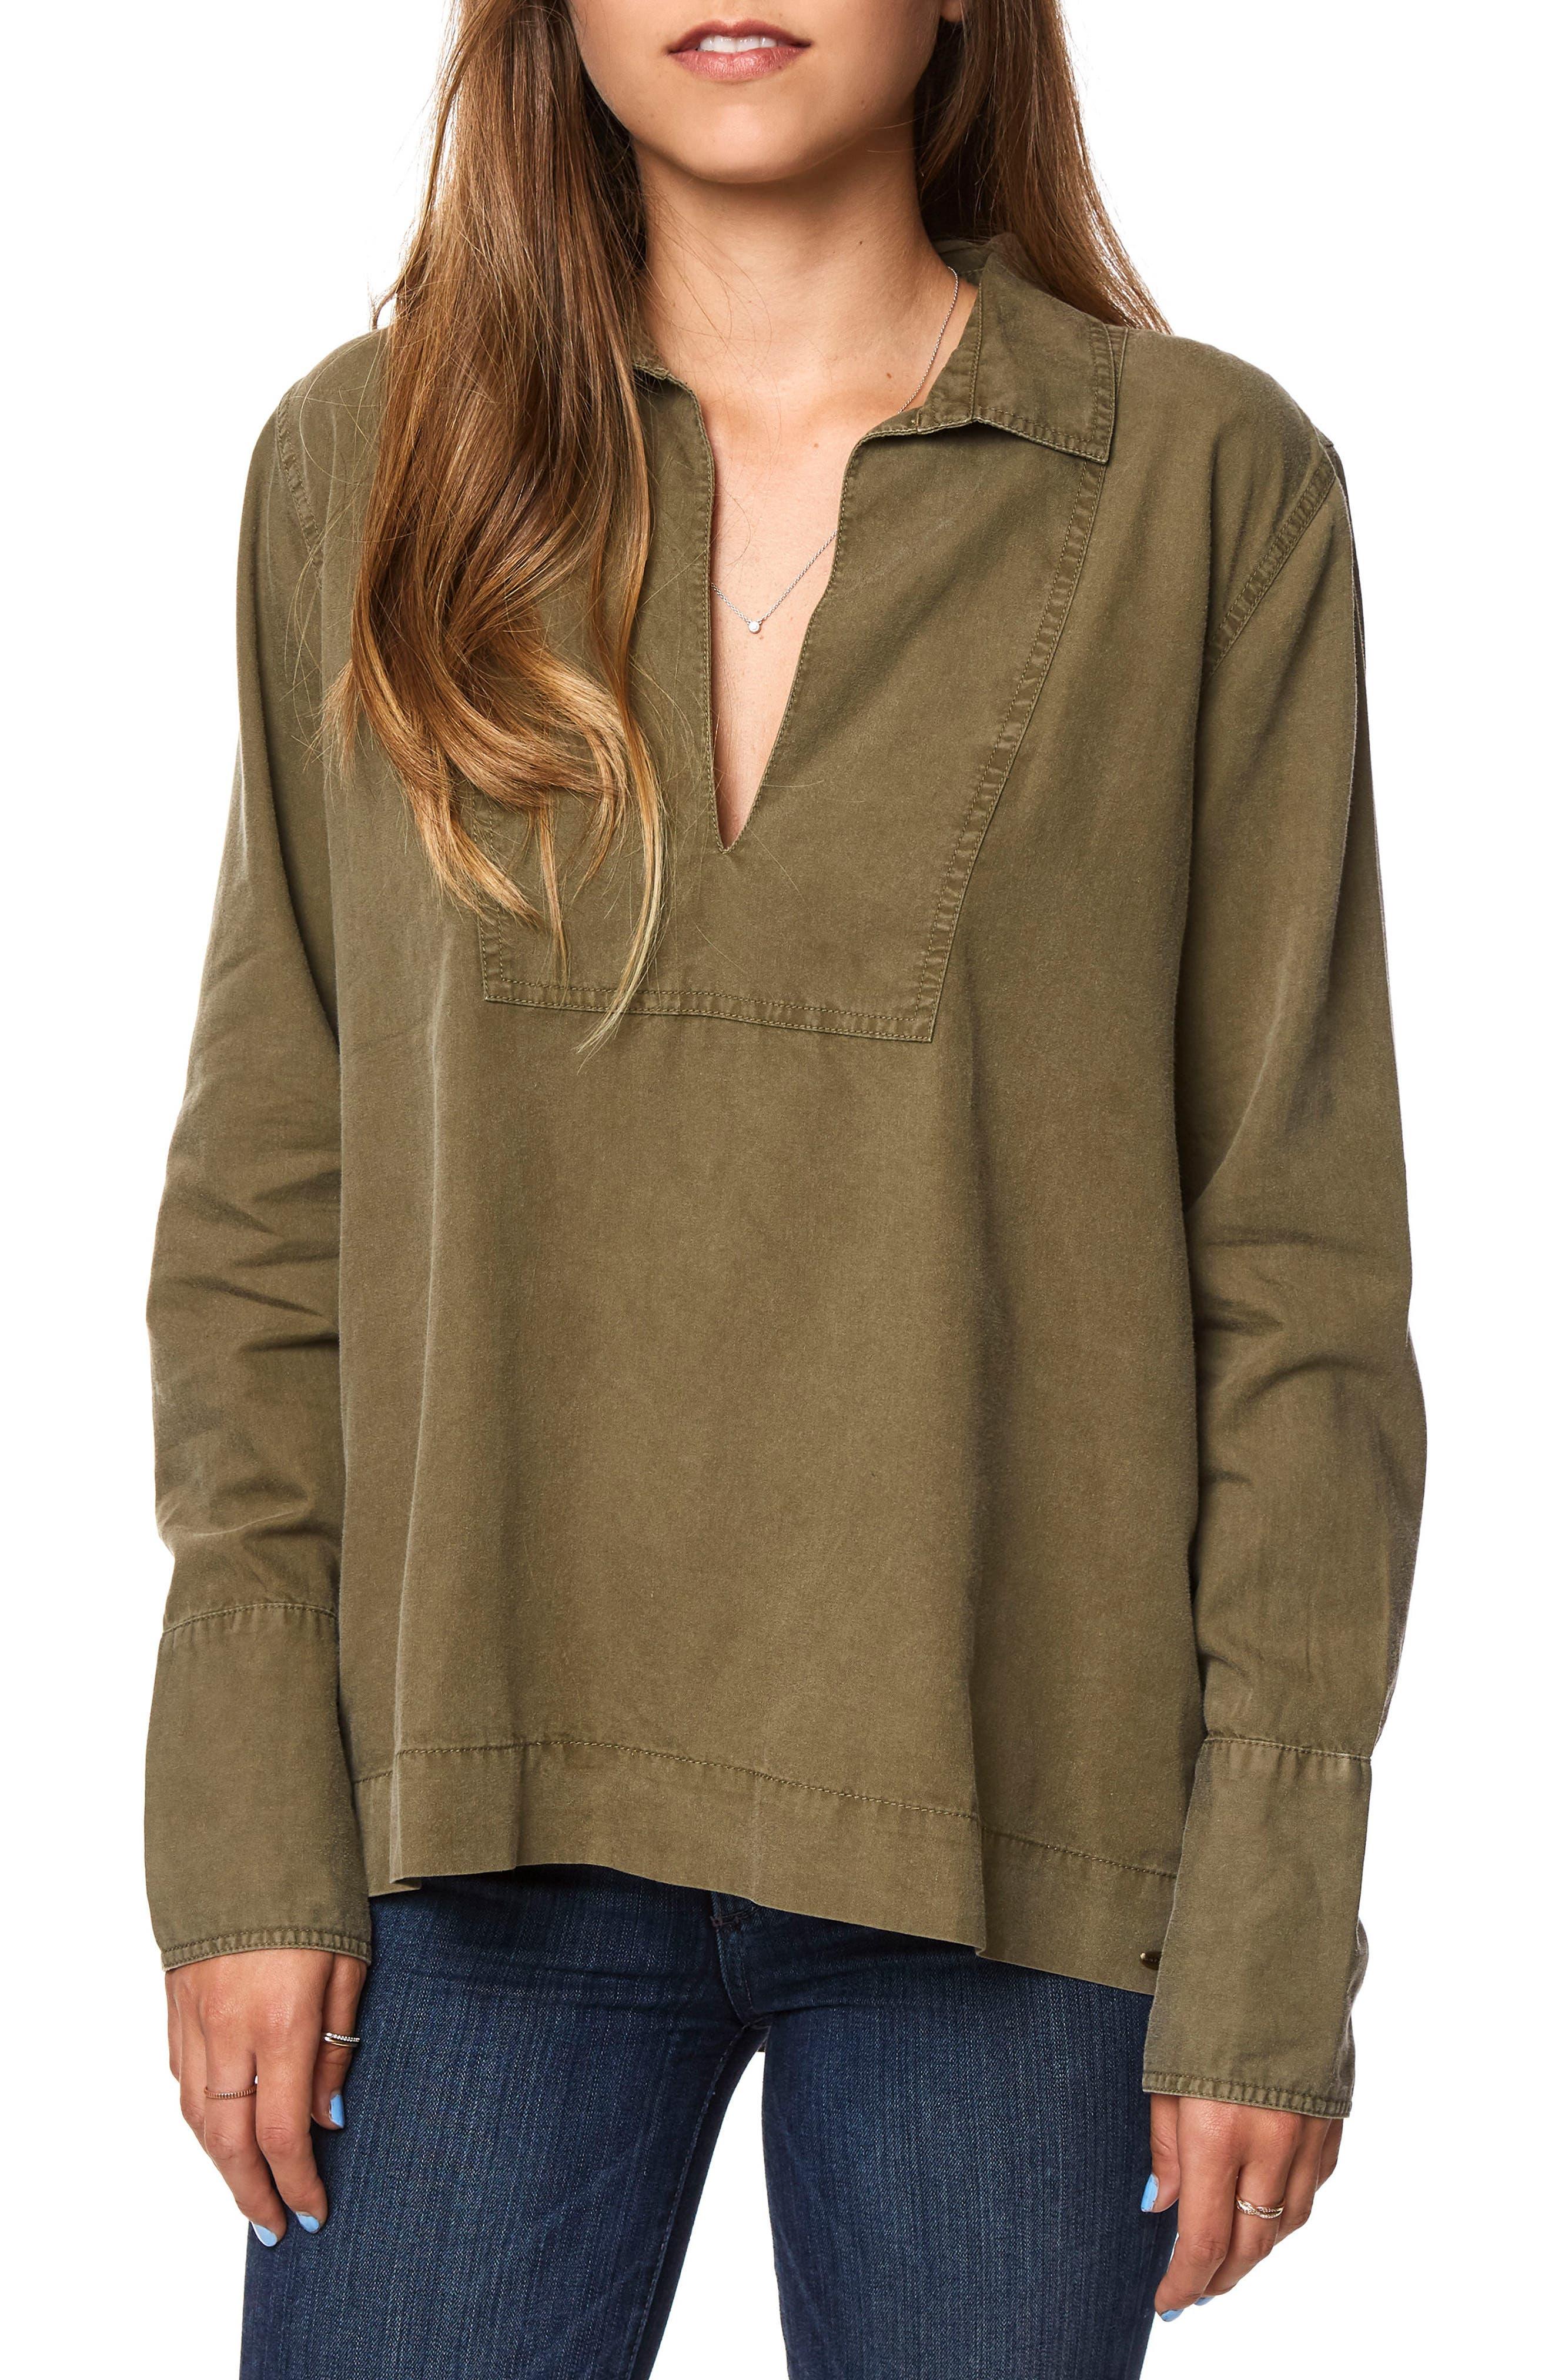 Court Popover Top,                         Main,                         color, Military Olive - Olv